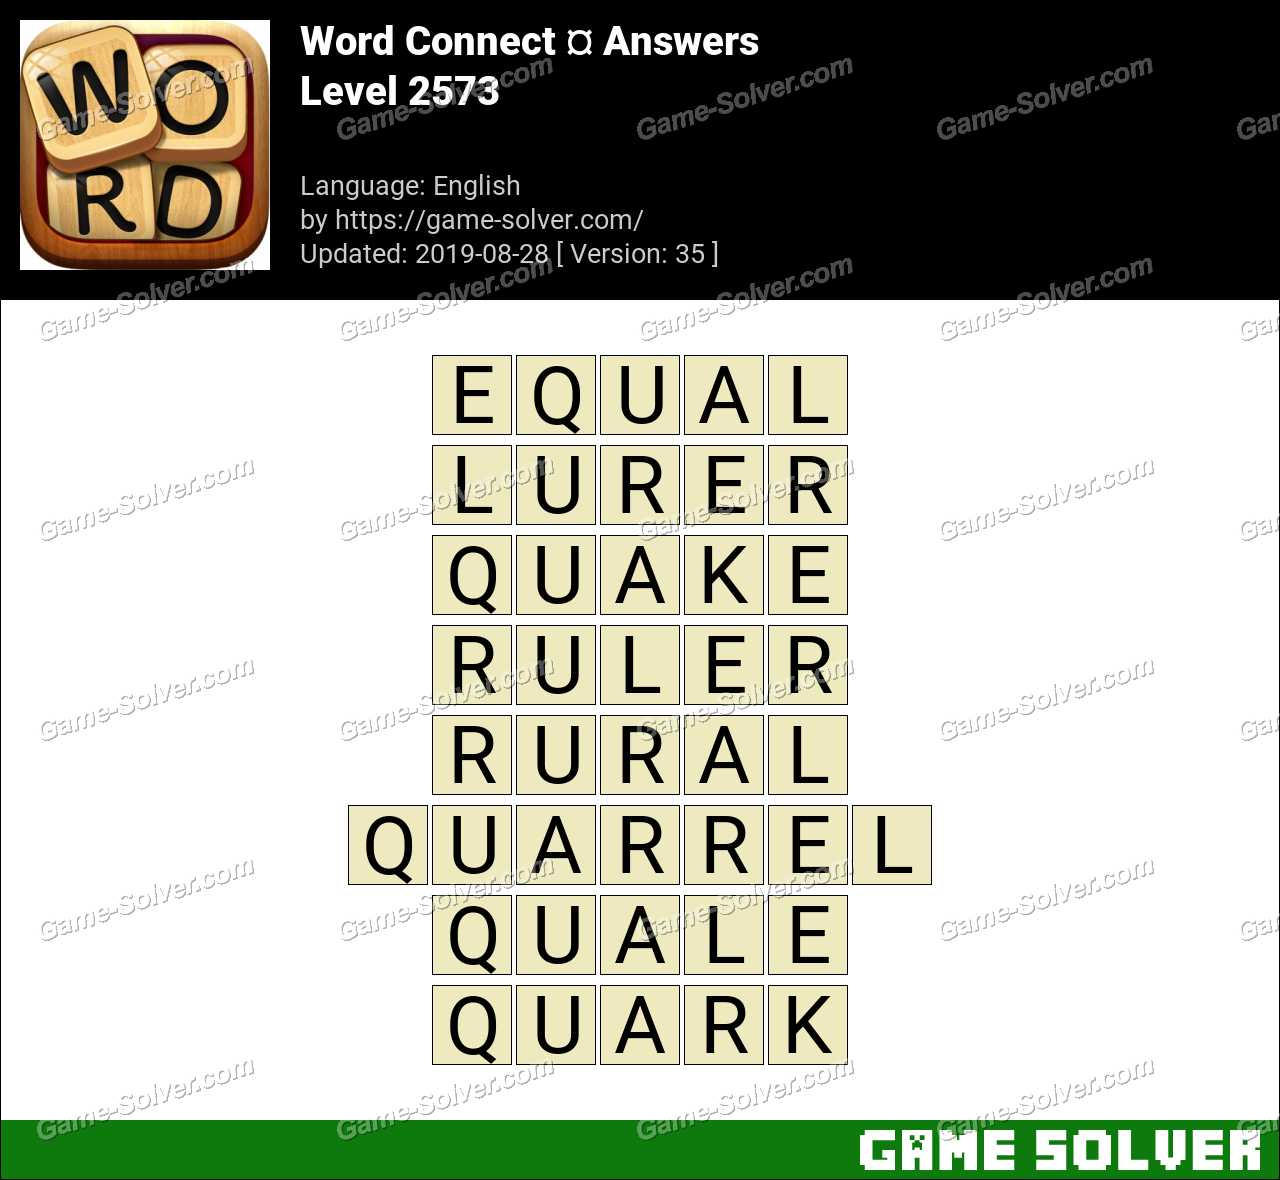 Word Connect Level 2573 Answers